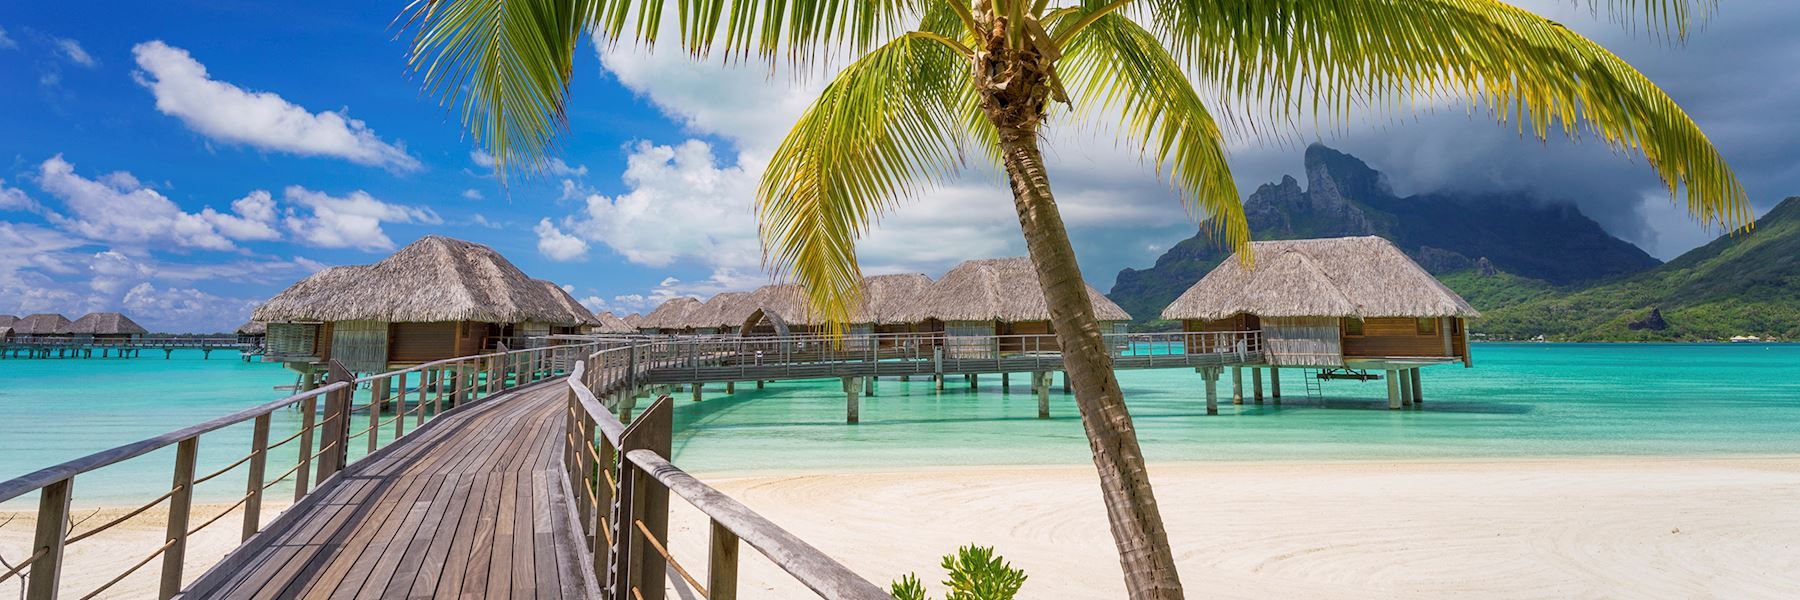 tailor-made vacations in the south pacific | audley travel